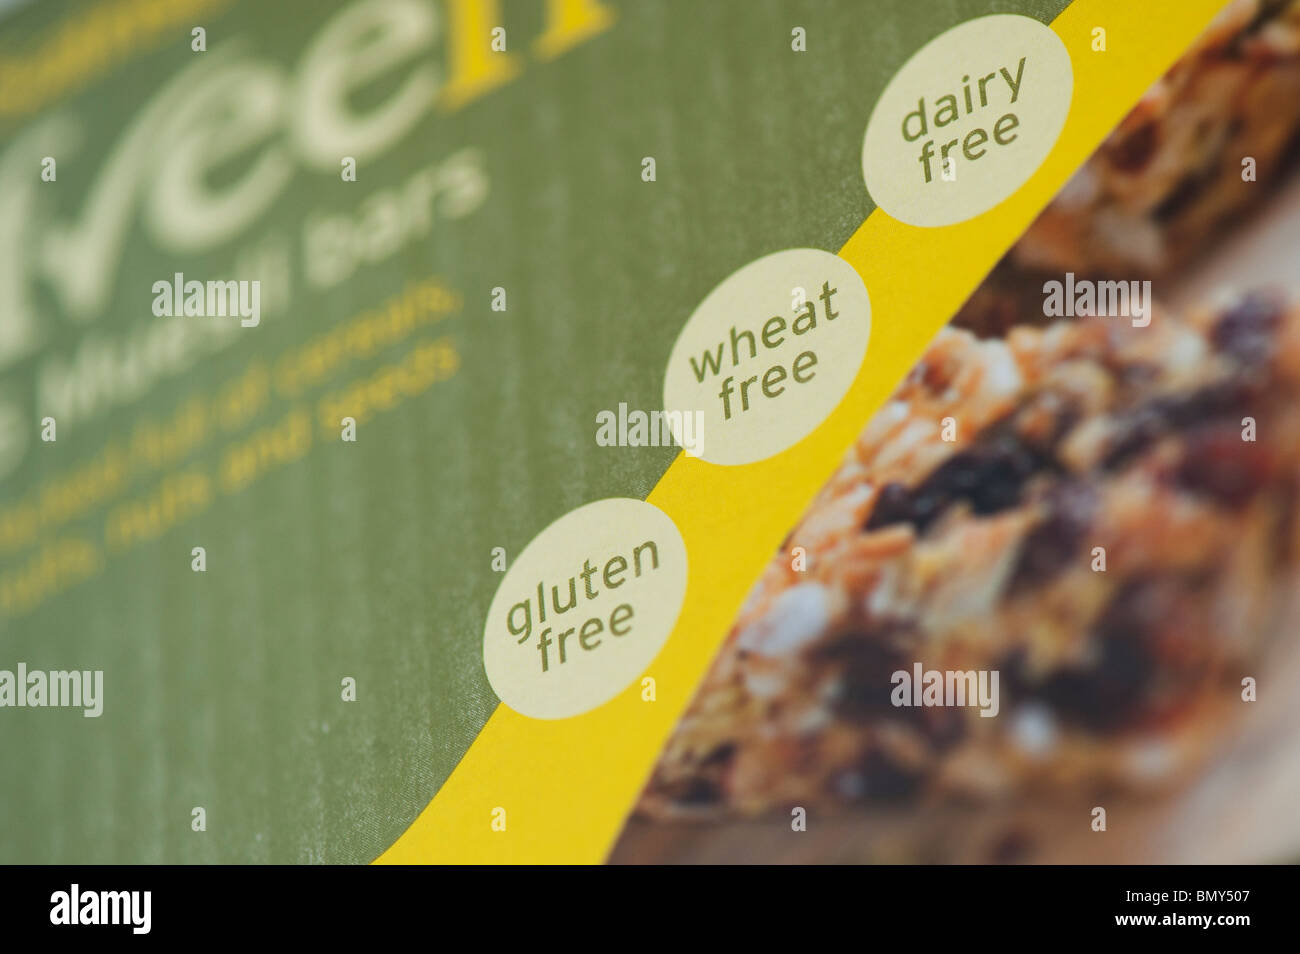 Wheat free, Gluten free, Dairy free food packet labeling - Stock Image